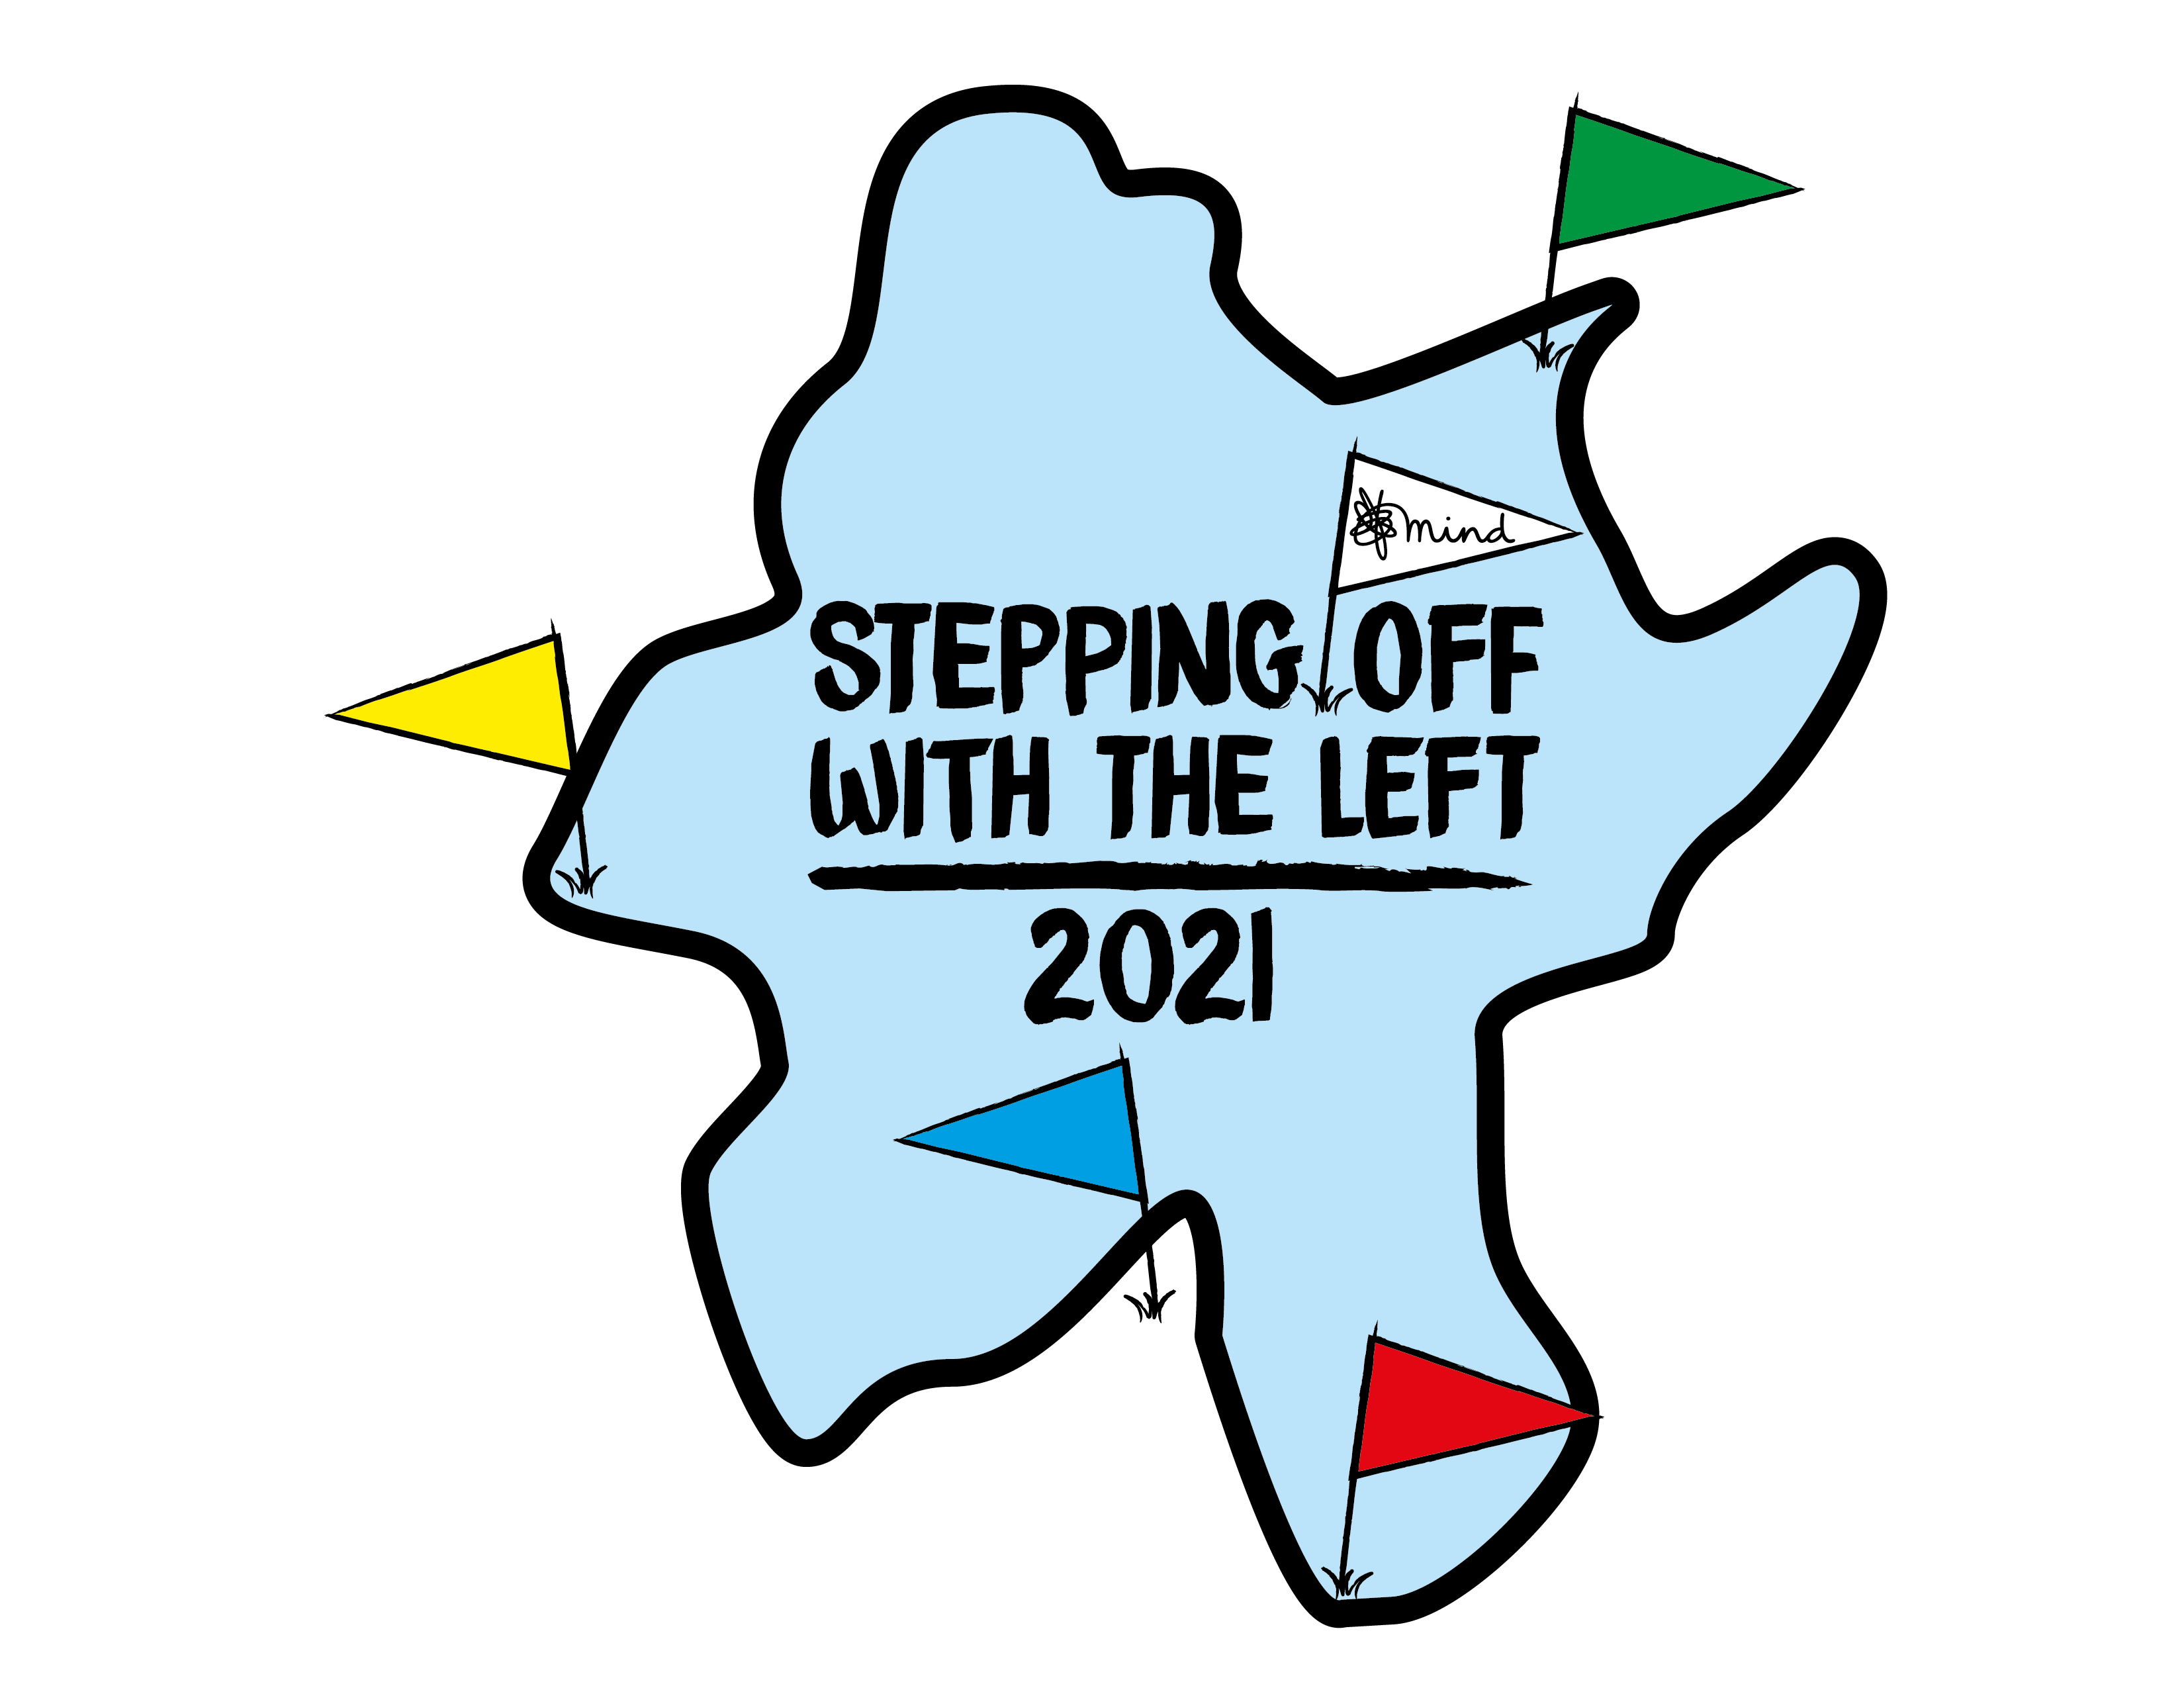 Stepping off with the Left Charity Walk 2021